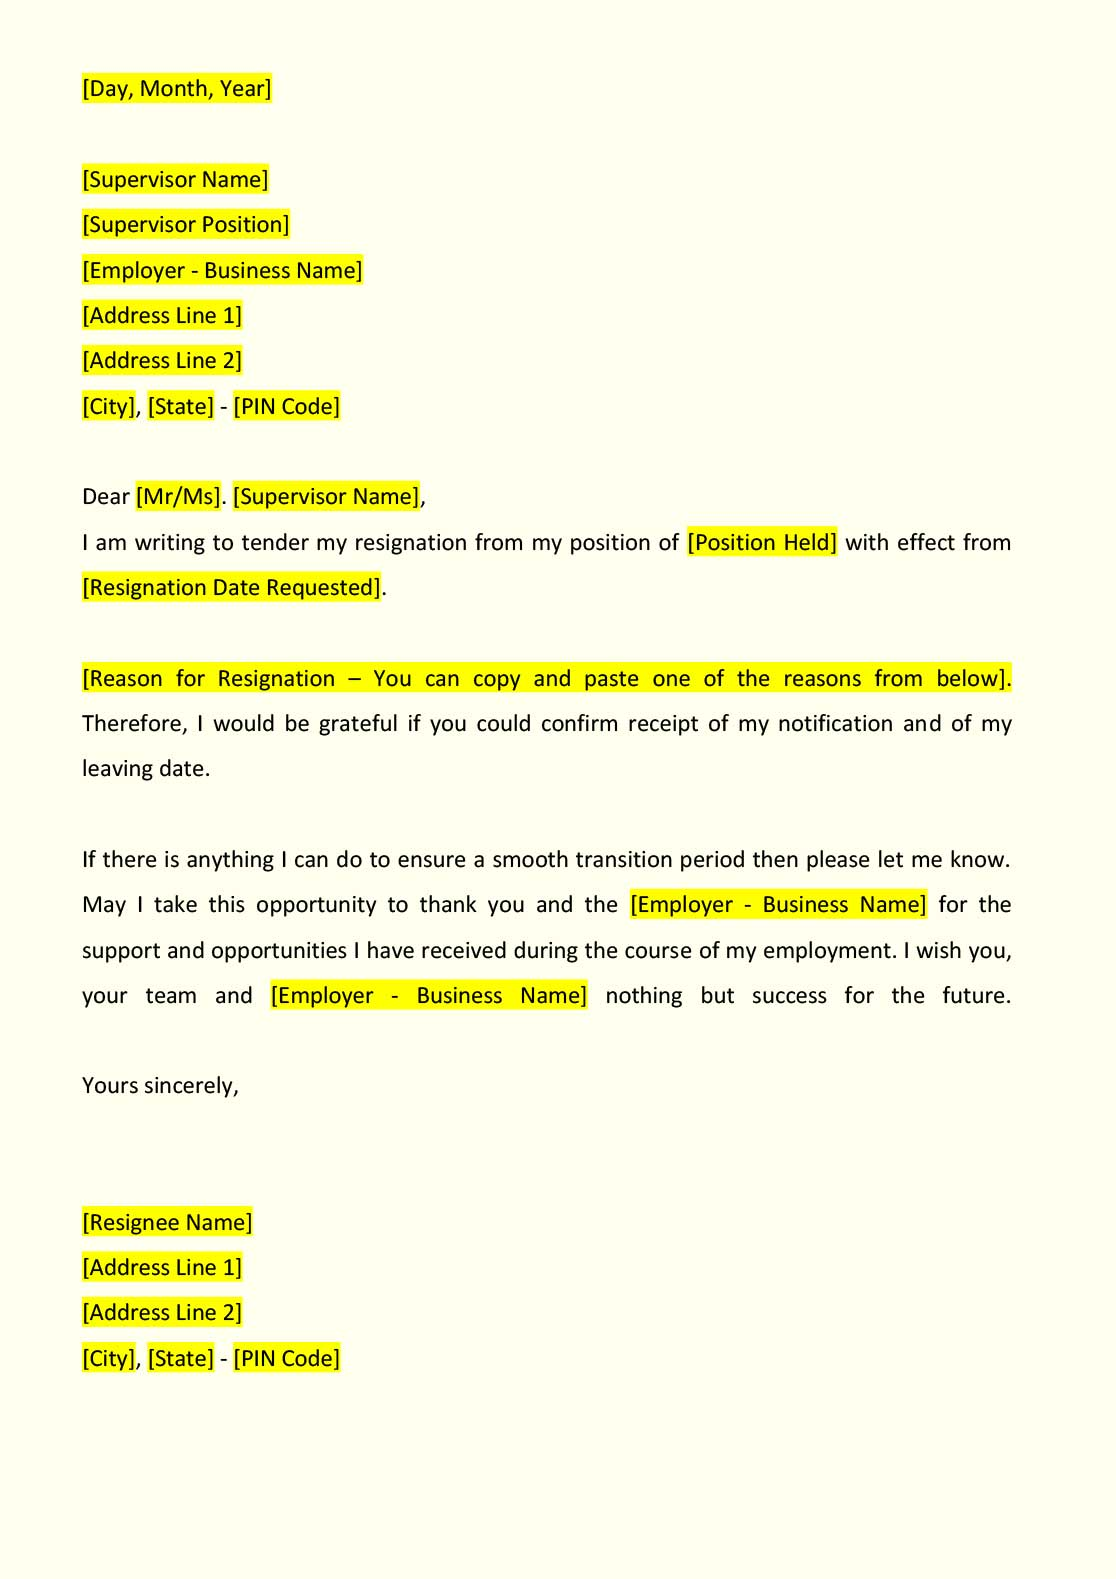 Resignation letter format indiafilings document center sample resignation letter altavistaventures Gallery